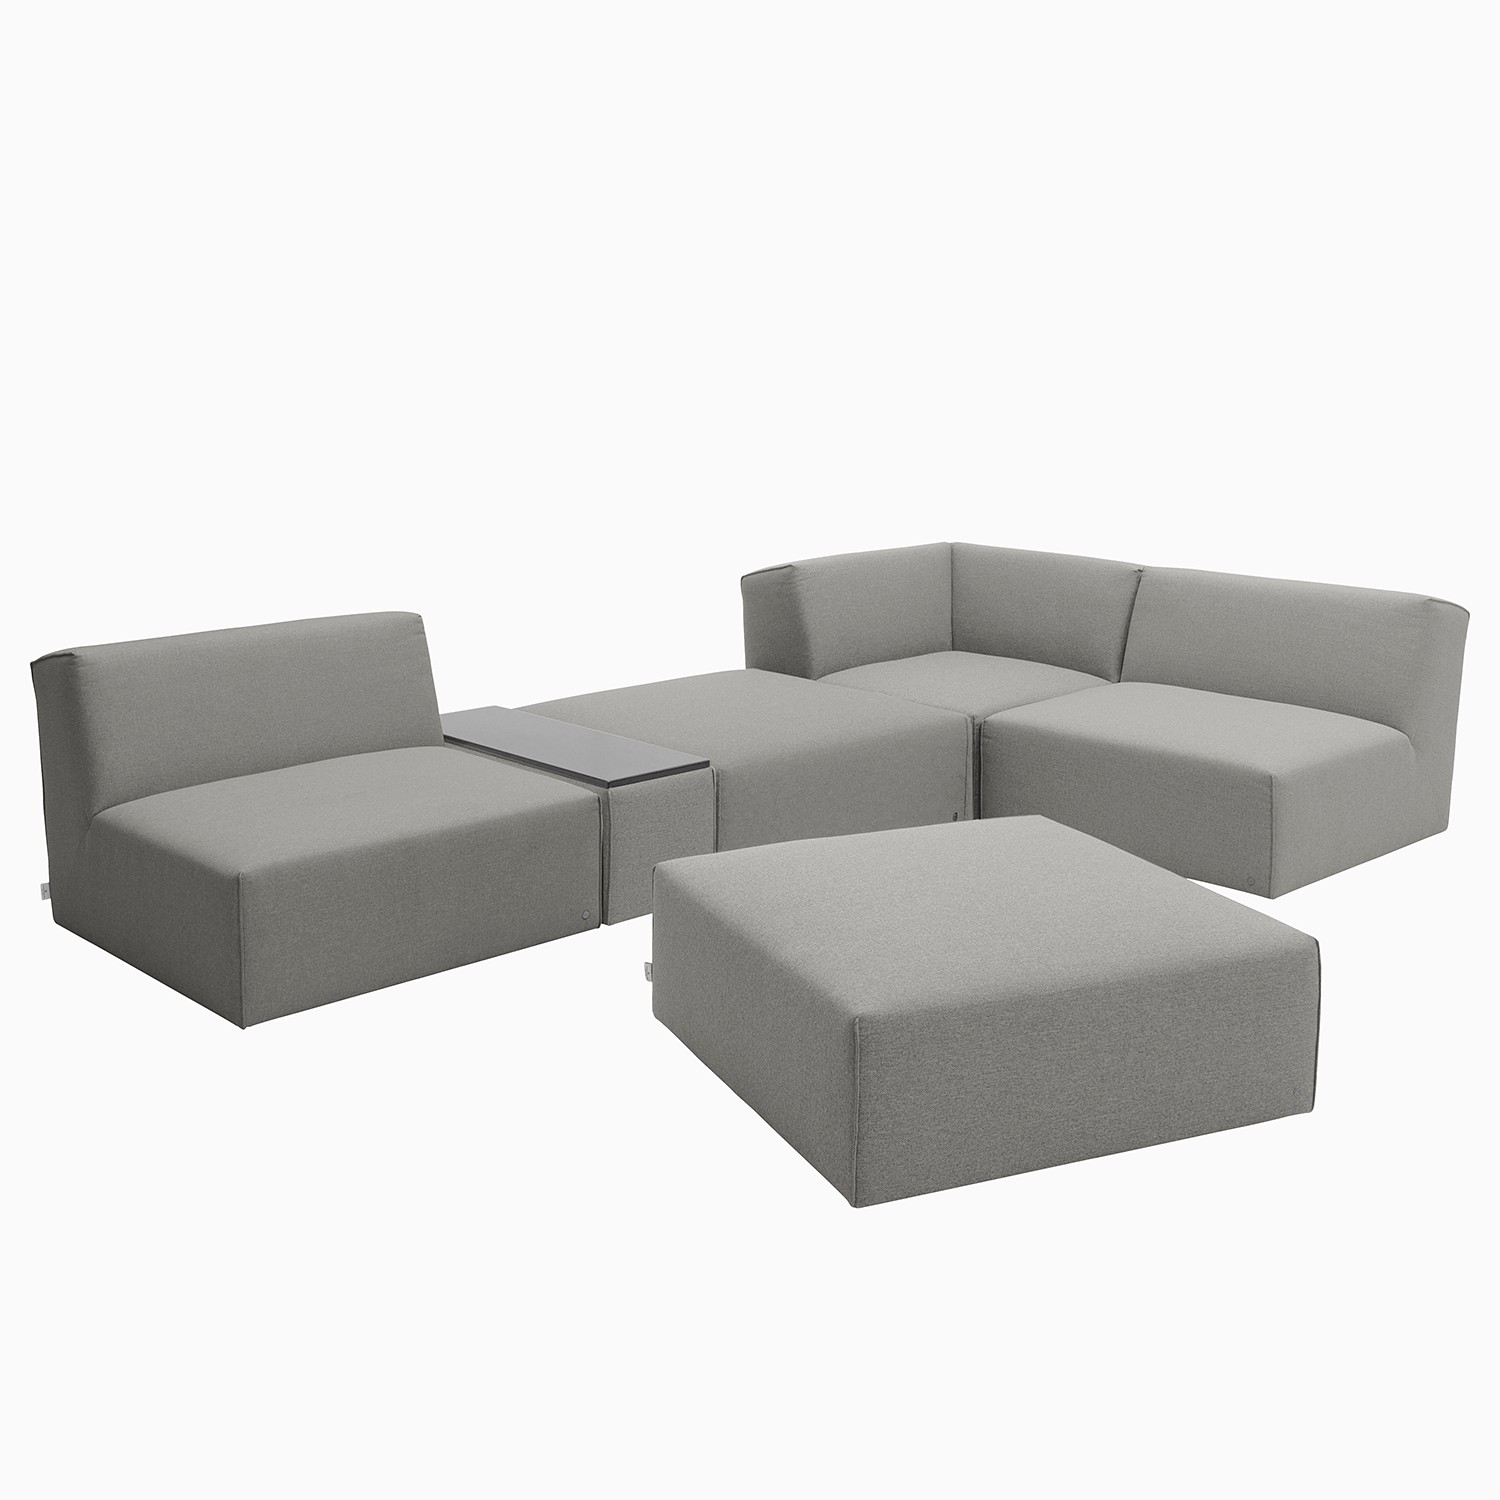 home24 Tom Tailor Ecksofa Elements XI Granit 100% Polyester 322x70x193 cm (BxHxT) Modern